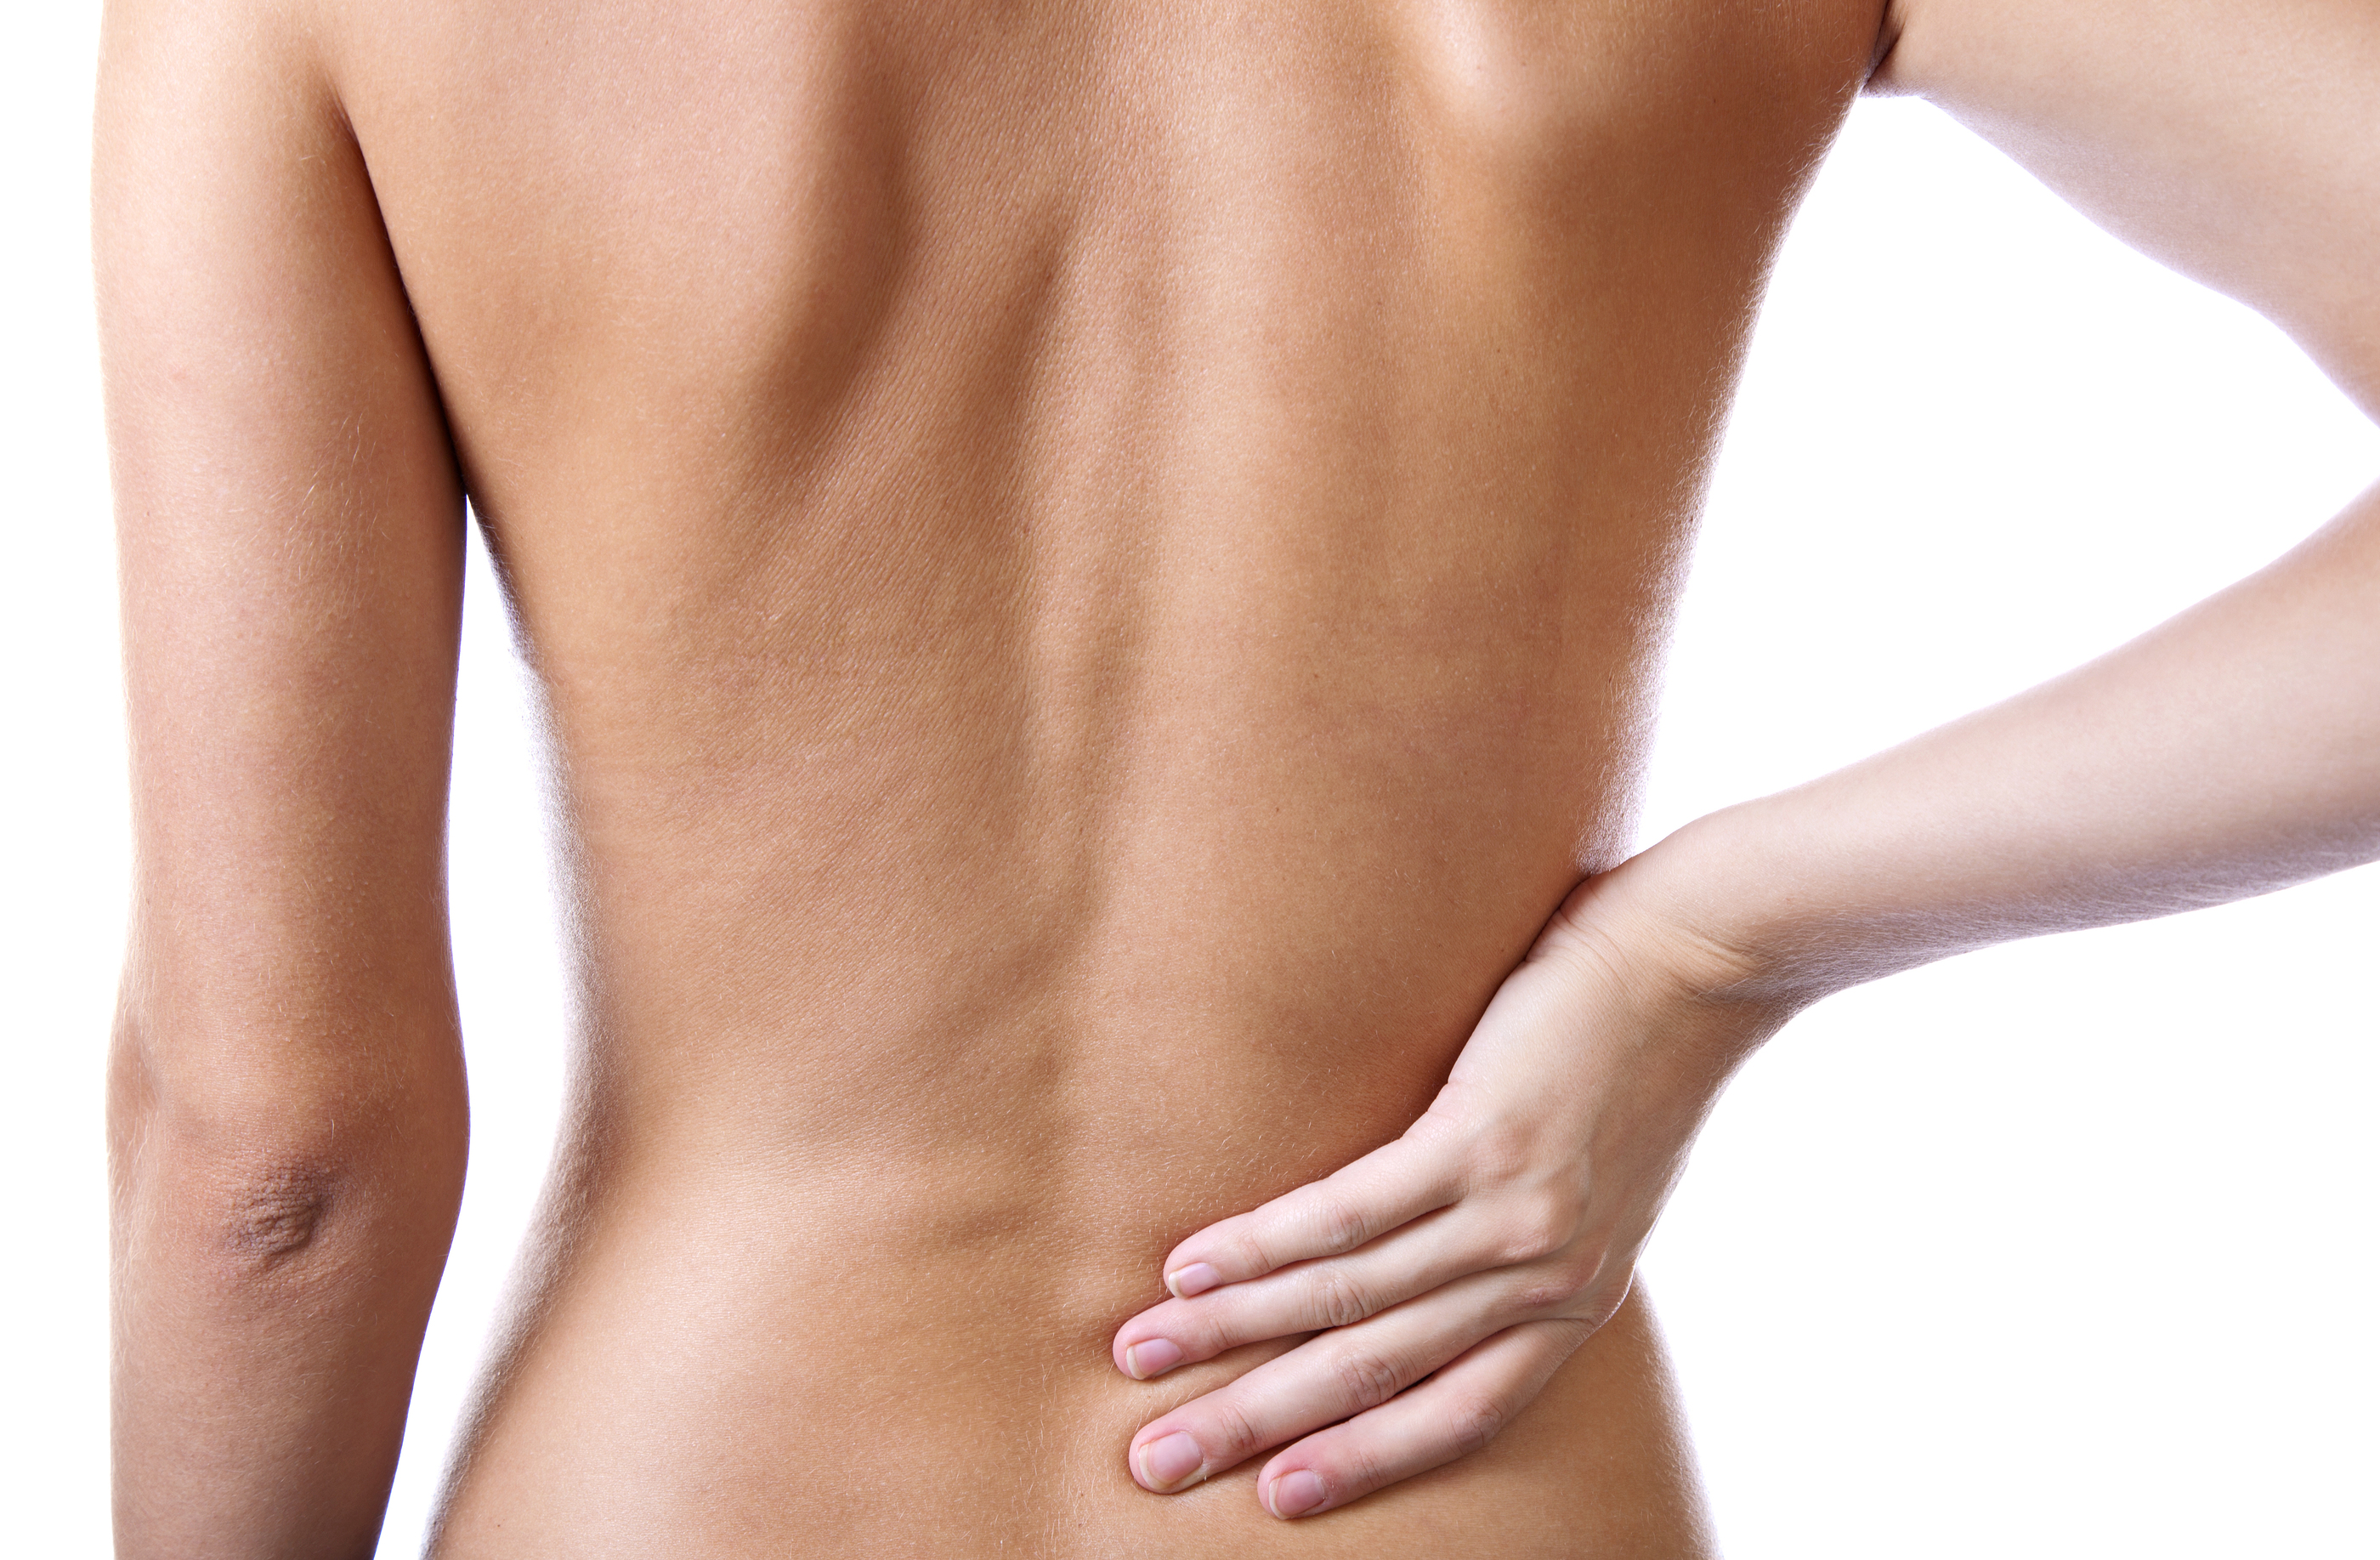 Posture For Back Pain: Improve Your Posture and Reduce Back Pain